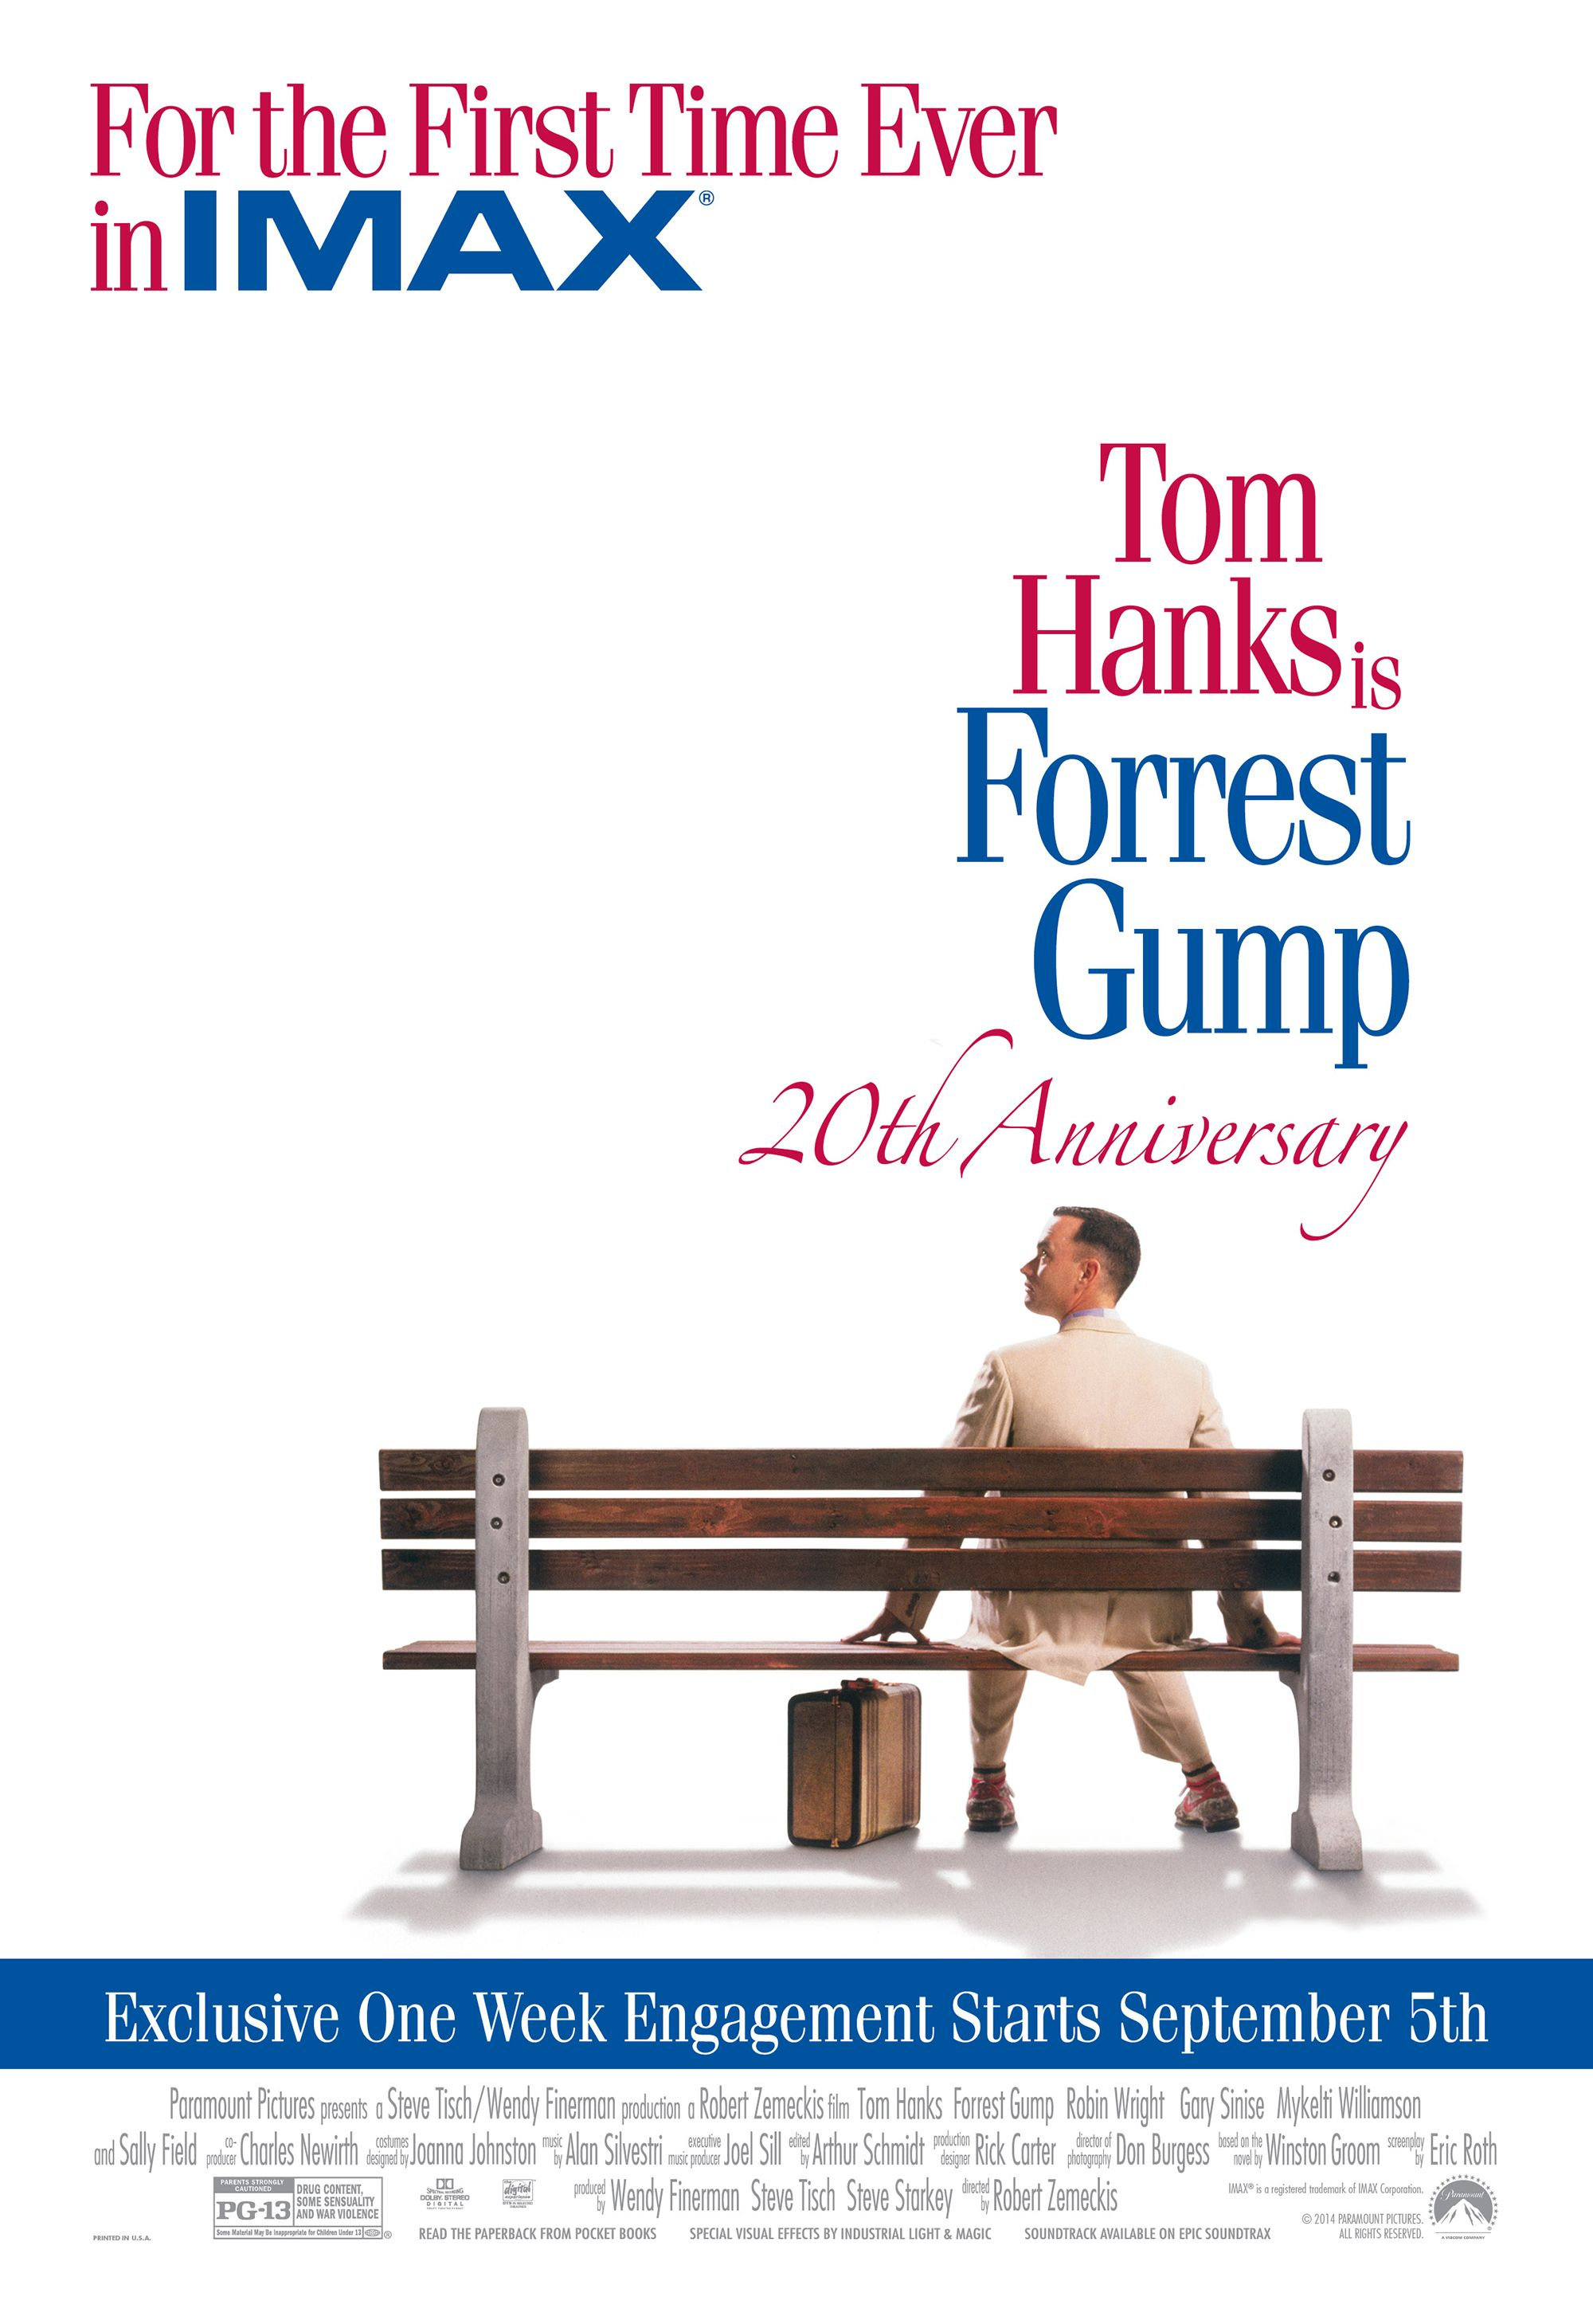 Forrest Gump Essay Forrest Gump Best Though Provoking Quotes 2pm